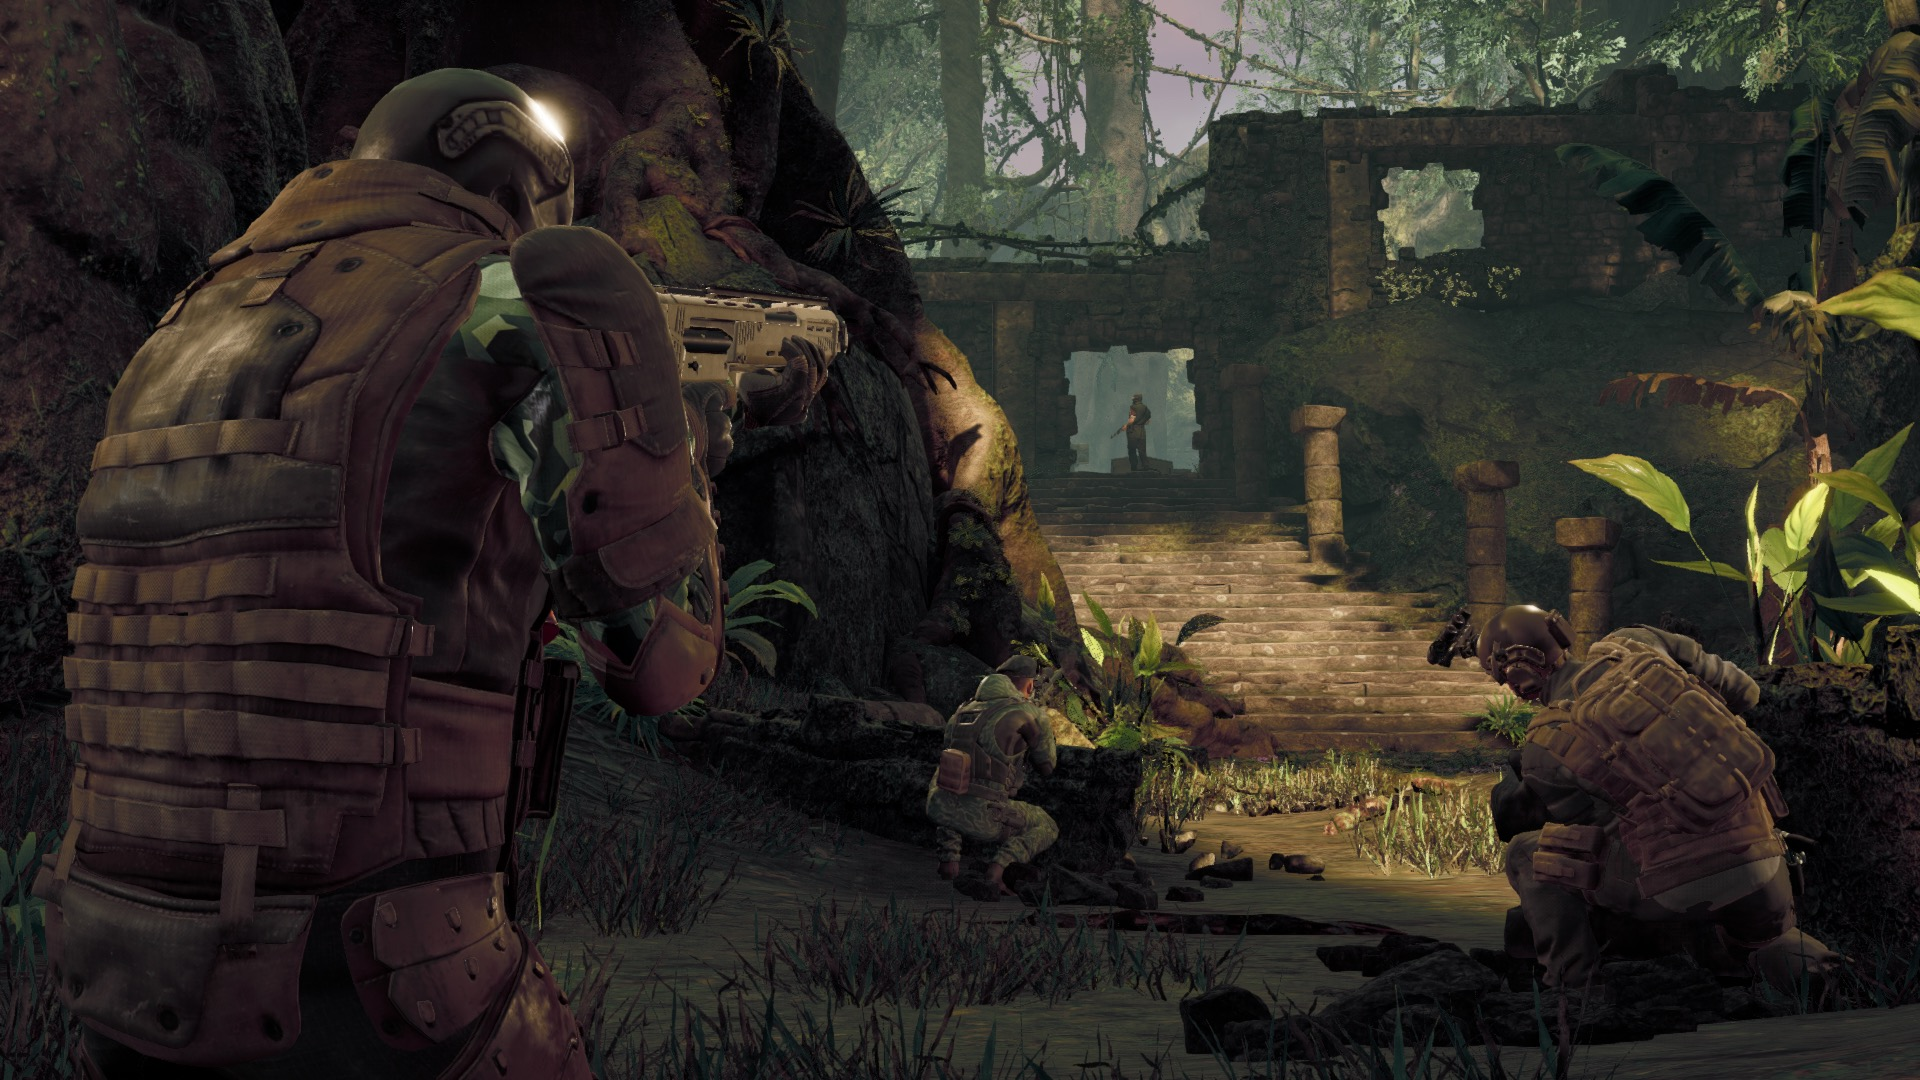 Soldiers aim their weapons at an enemy in the jungle